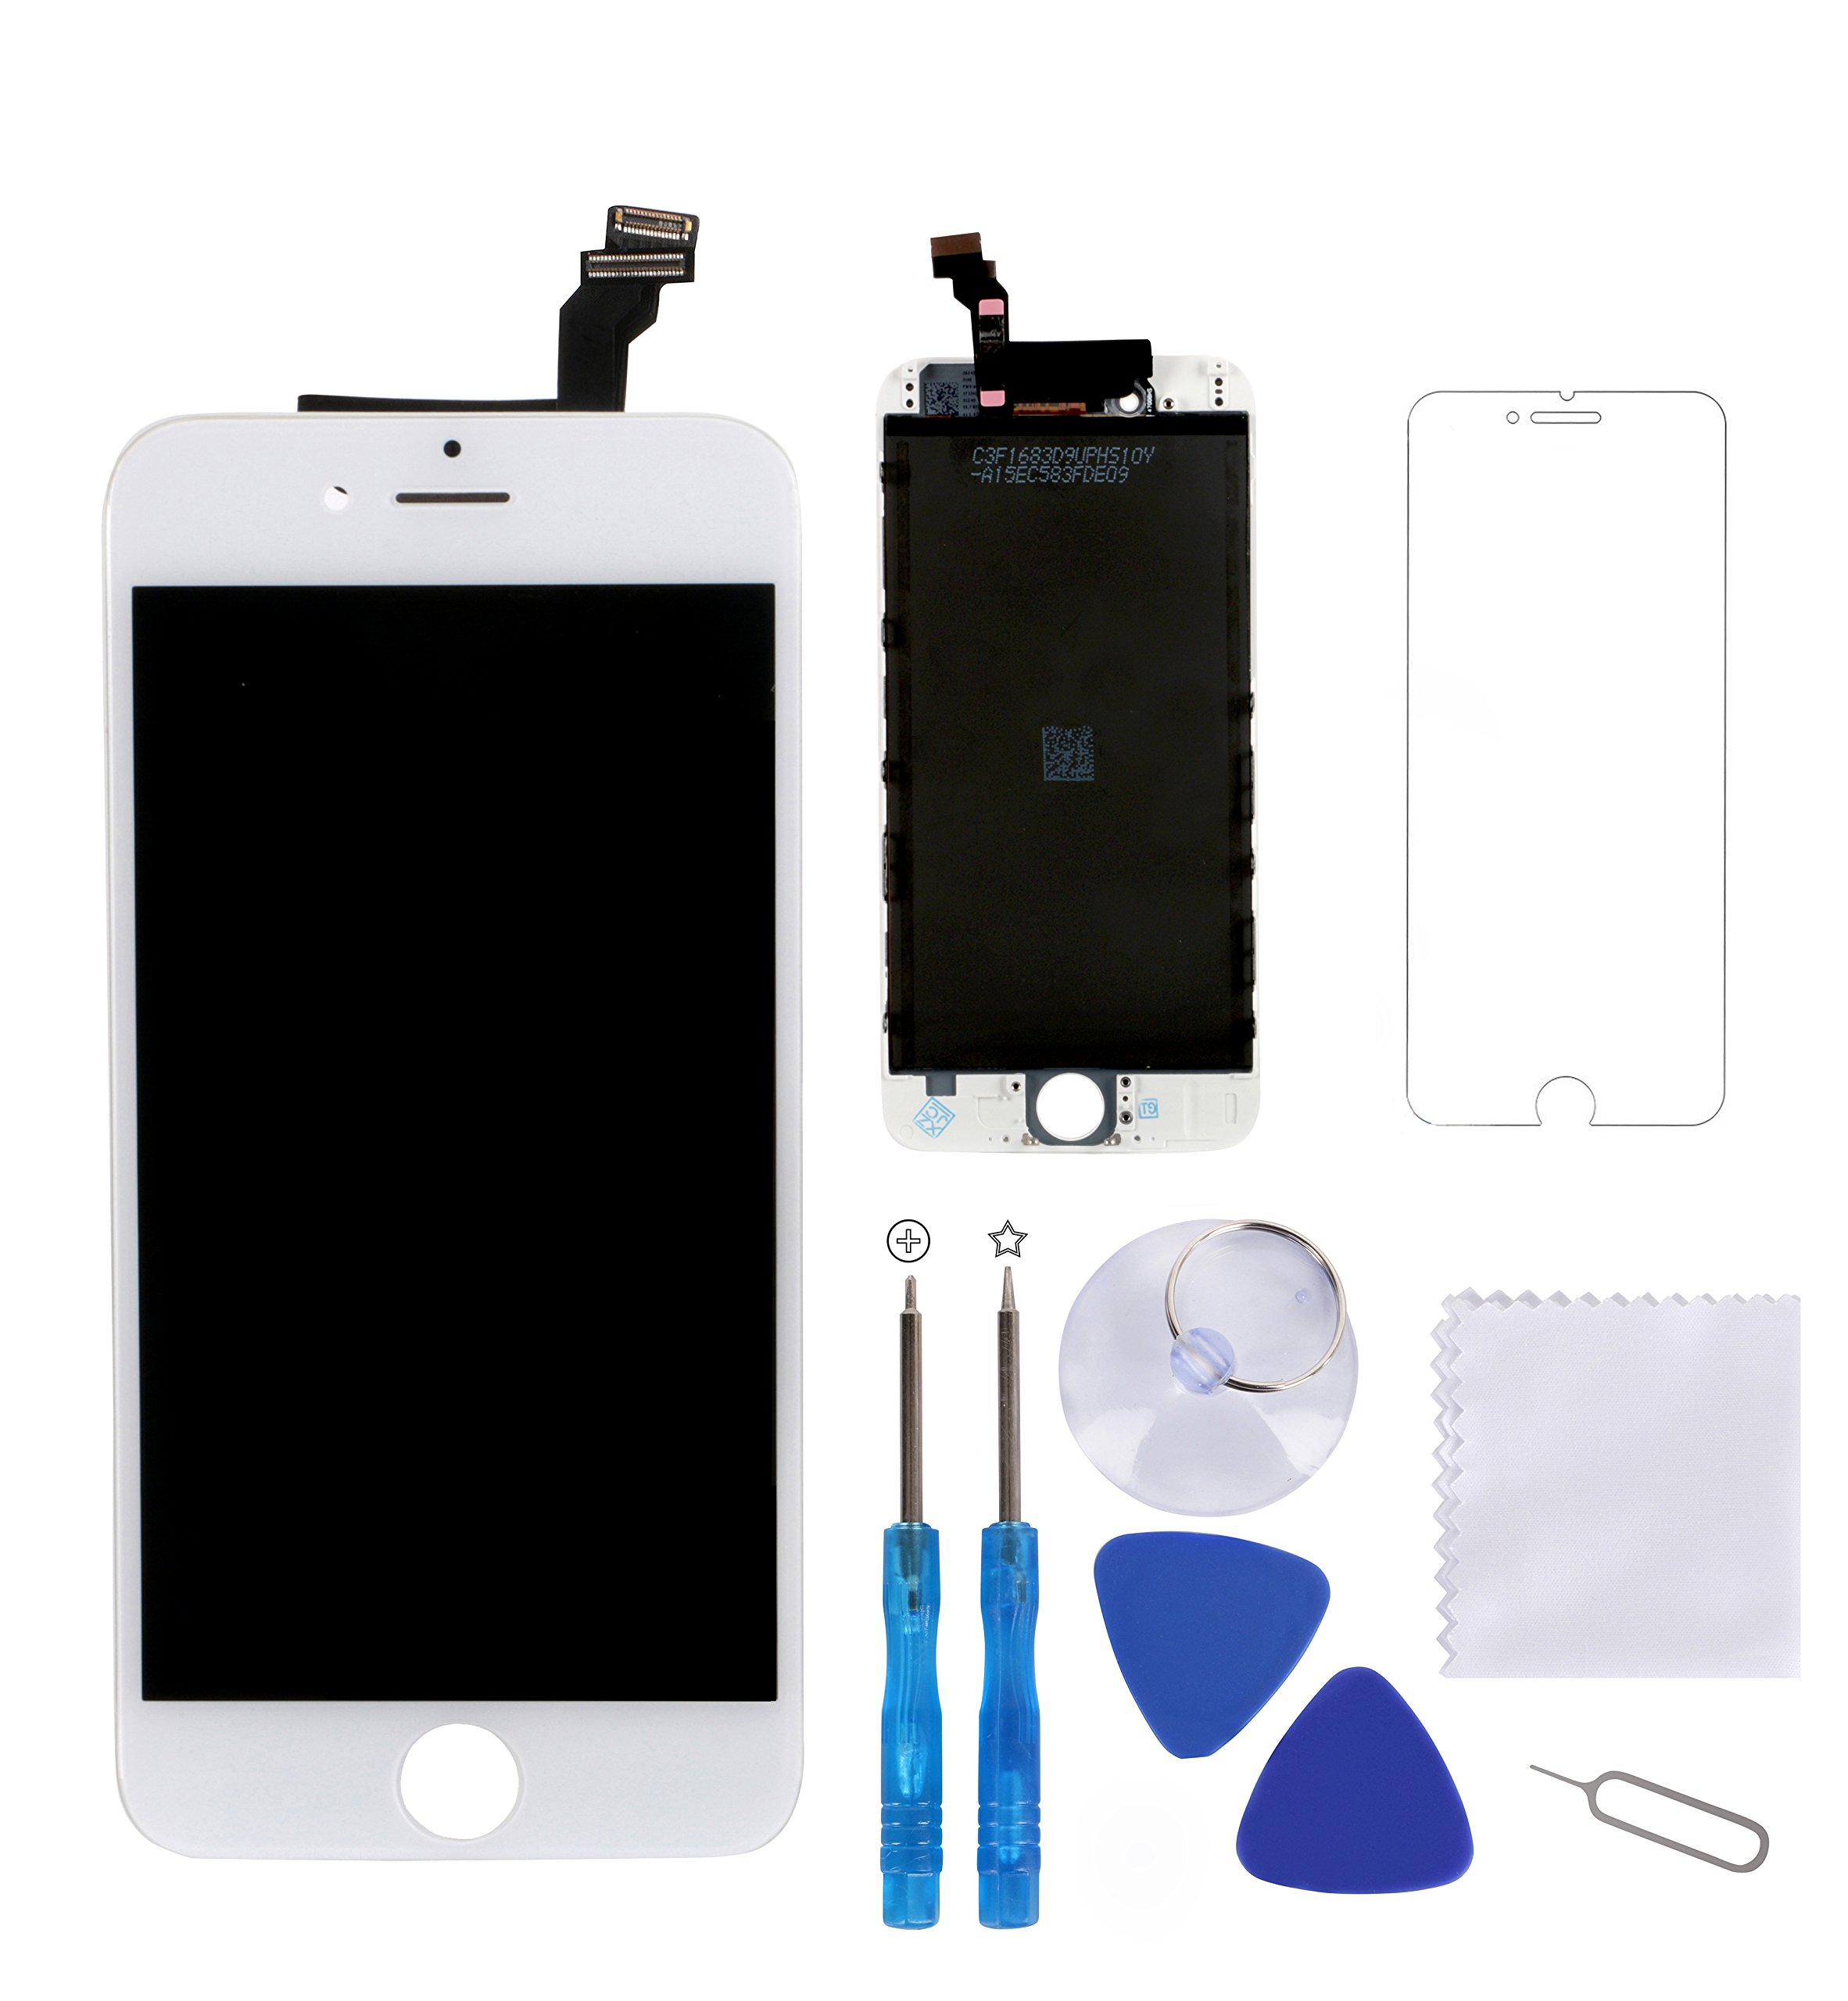 iPhone 6 Screen Replacement White, Giorefix 4.7 Inch LCD Display Touch Screen Digitizer Frame Assembly with Full Set Repair Tools Screen Protector for iPhone 6 Display White